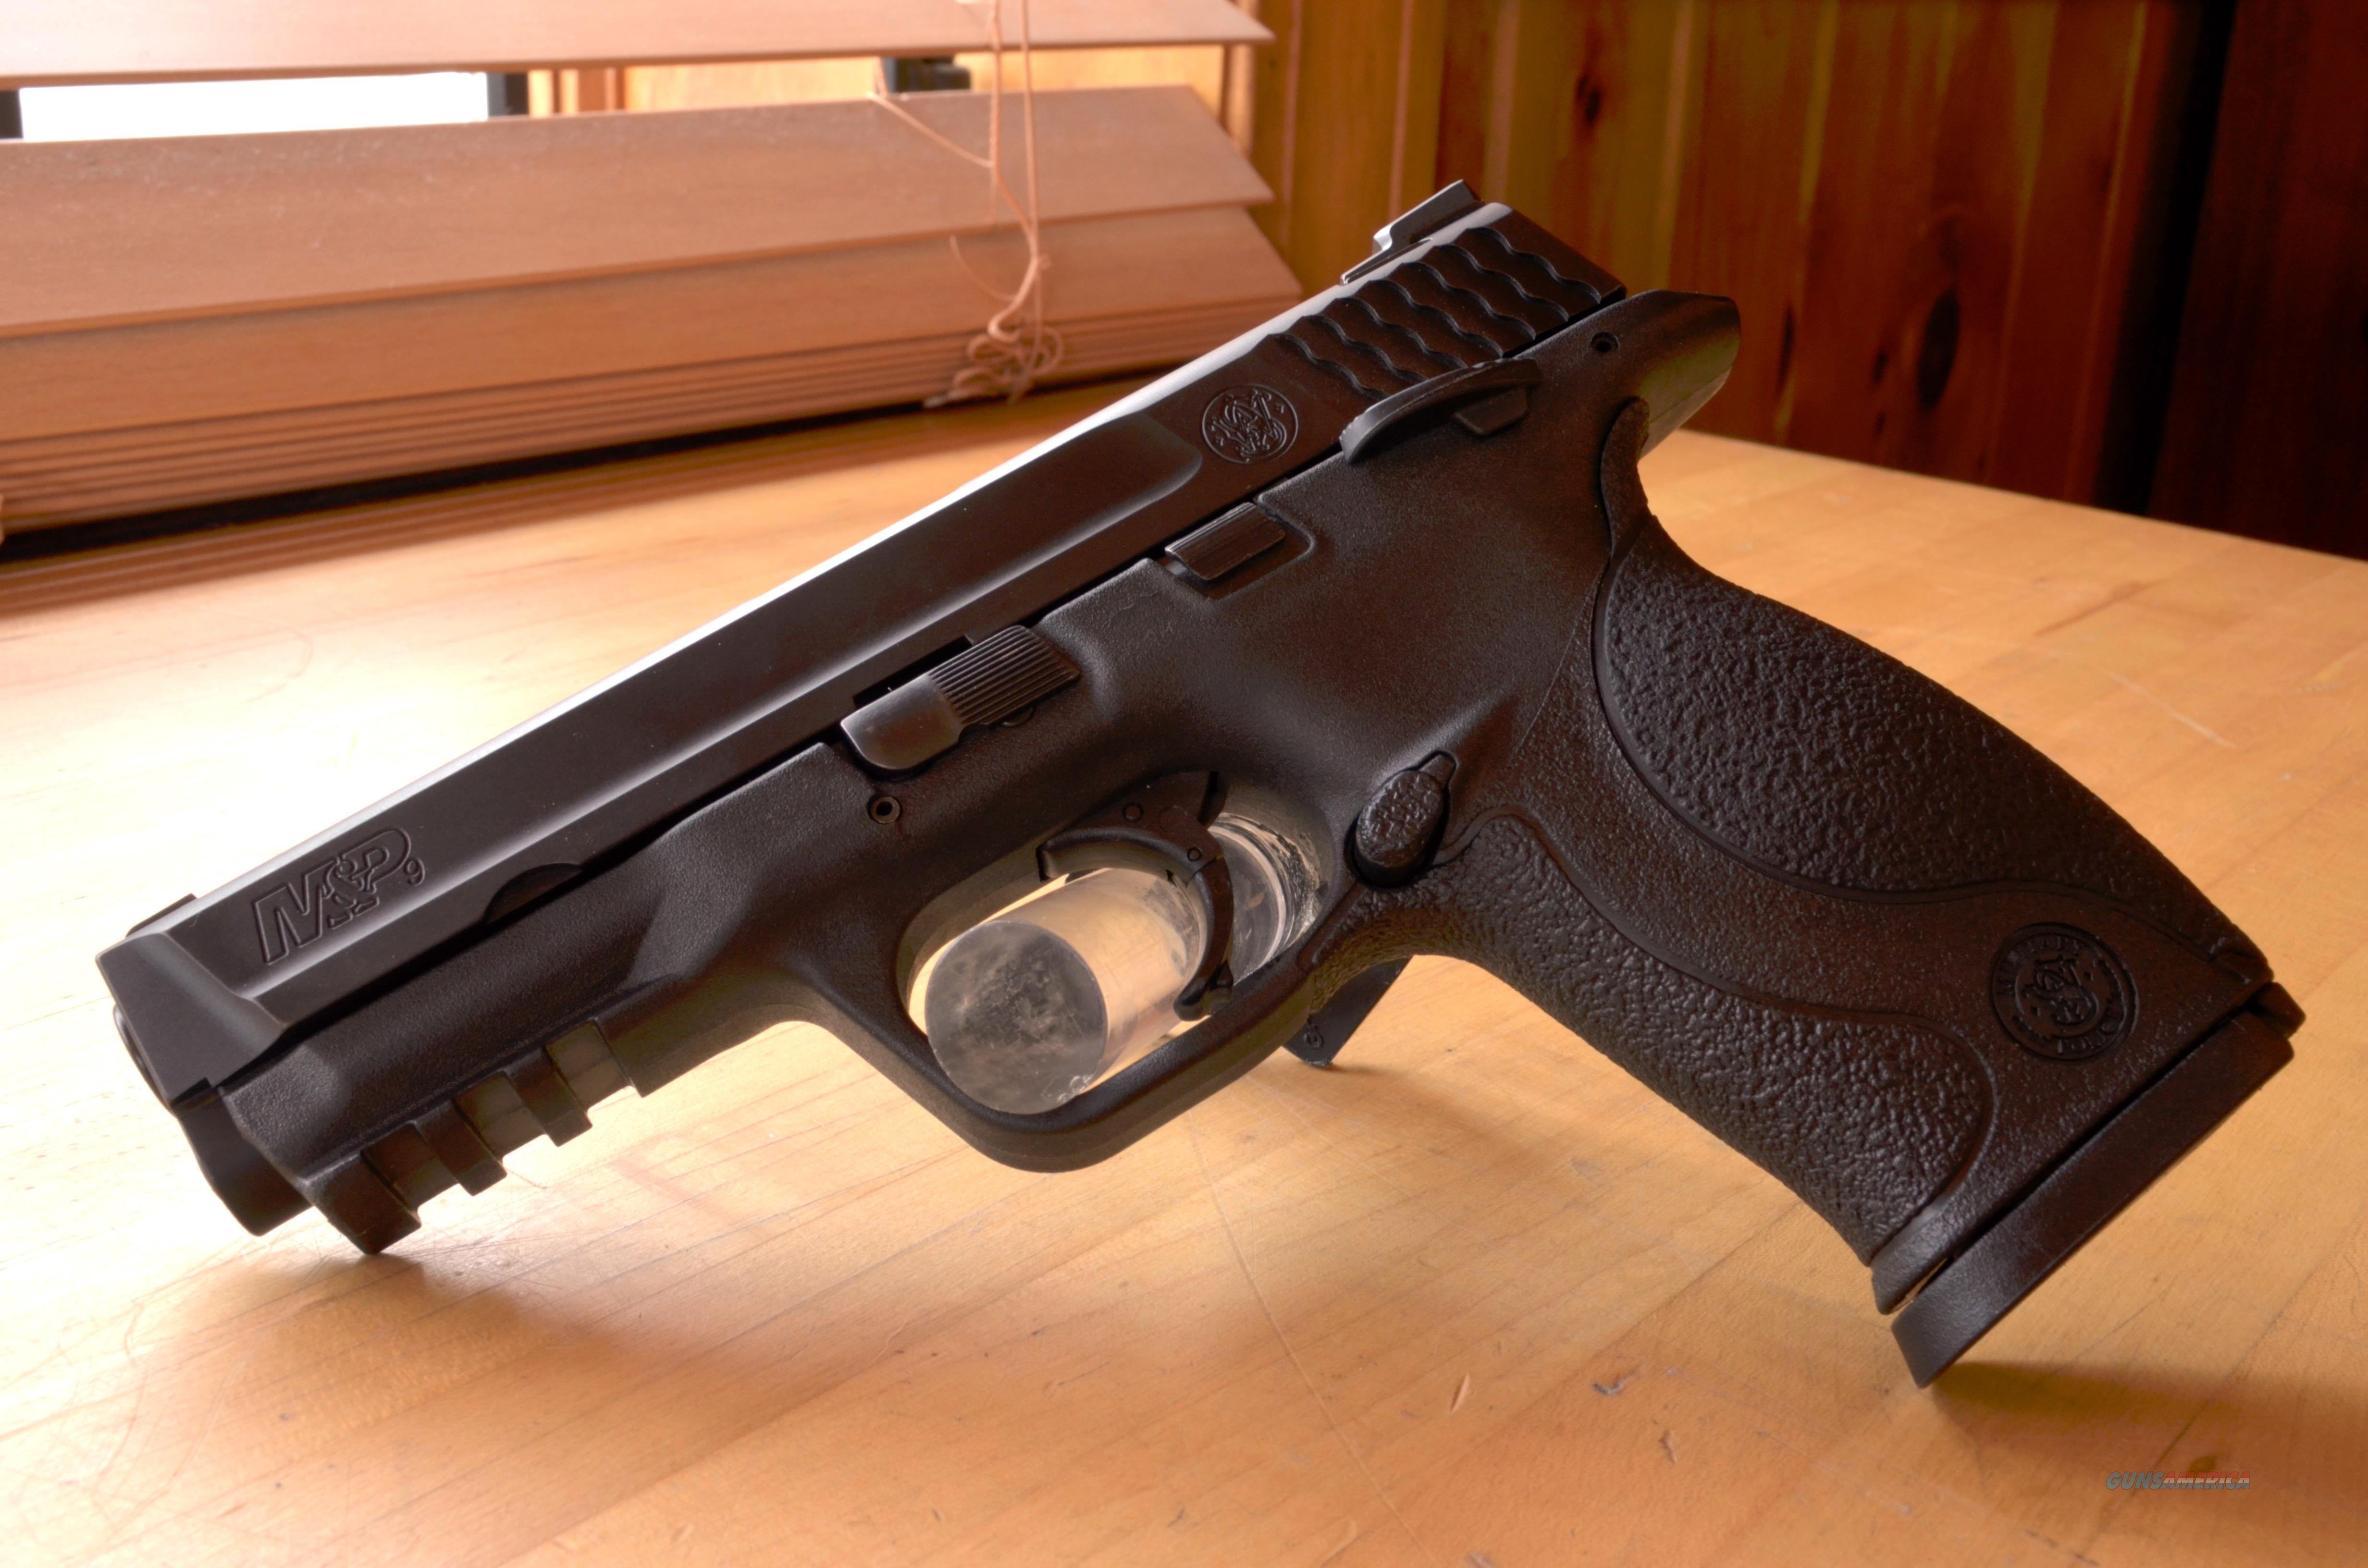 USED Smith & Wesson M&P9 9mm  Guns > Pistols > Smith & Wesson Pistols - Autos > Polymer Frame